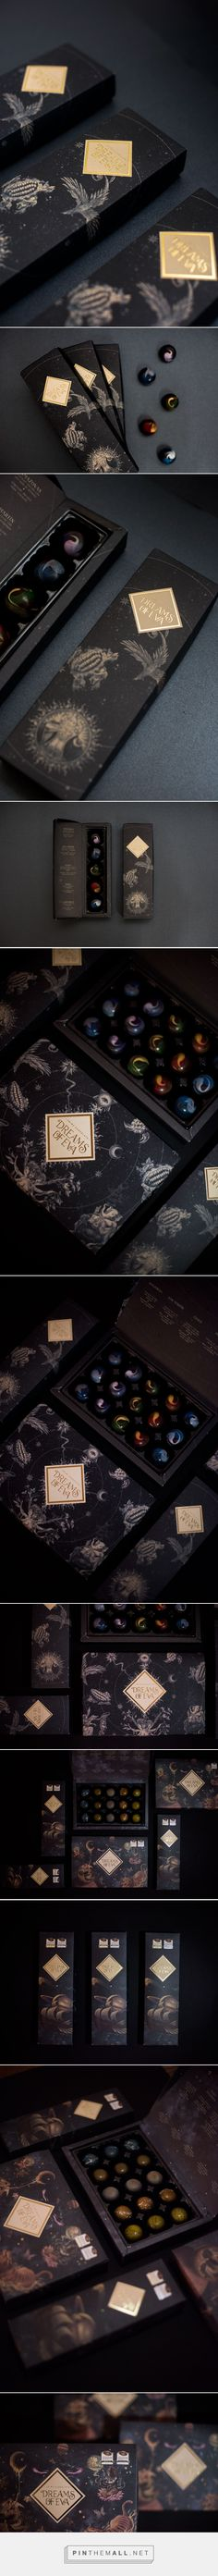 Dreams of Eva Chocolate Package Design on Behance | Fivestar Branding – Design and Branding Agency & Inspiration Gallery